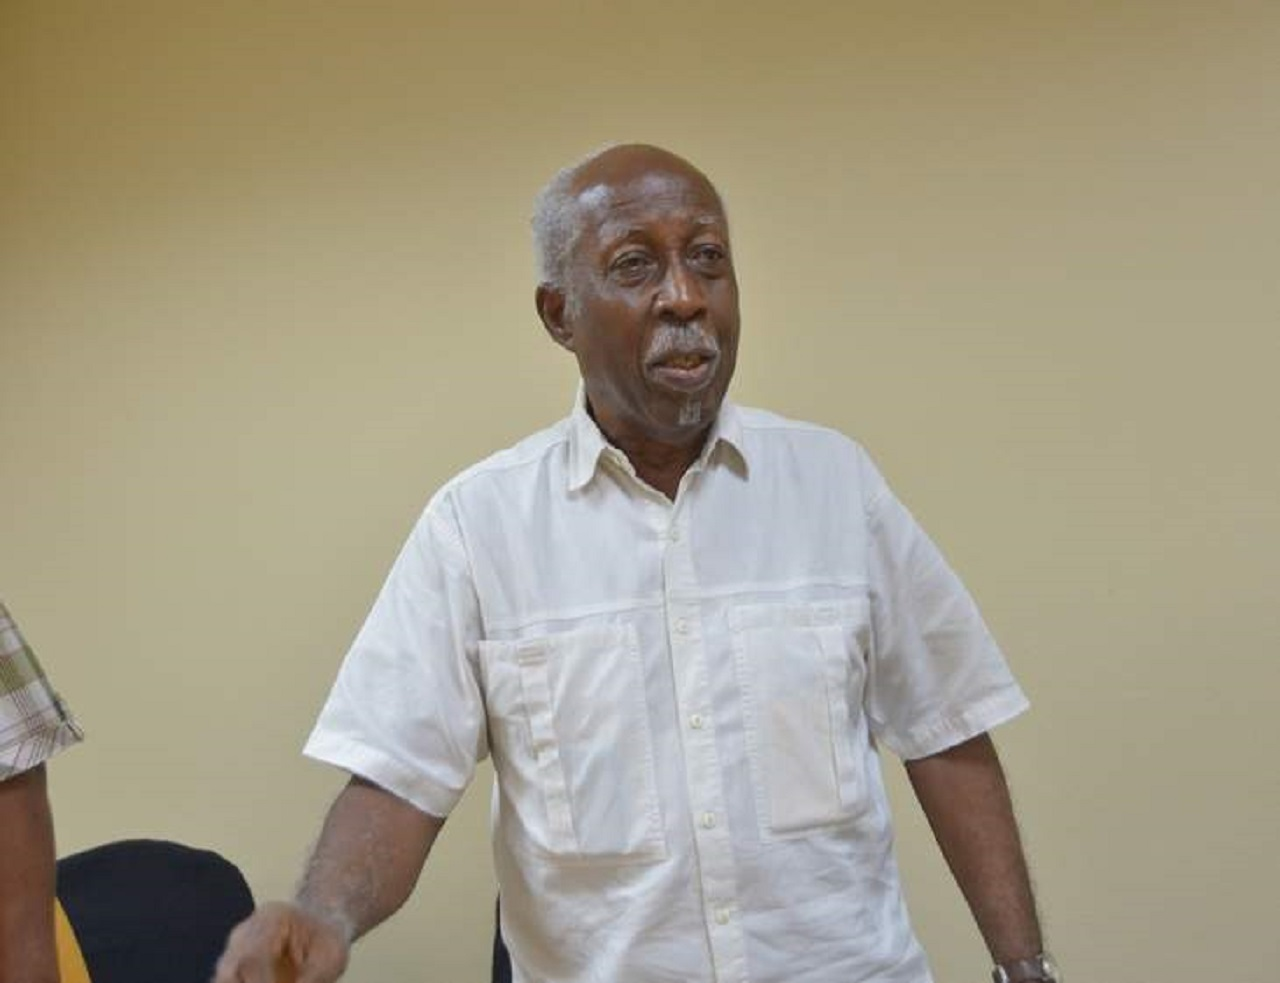 Former head of the Public Service, Reginald Dumas